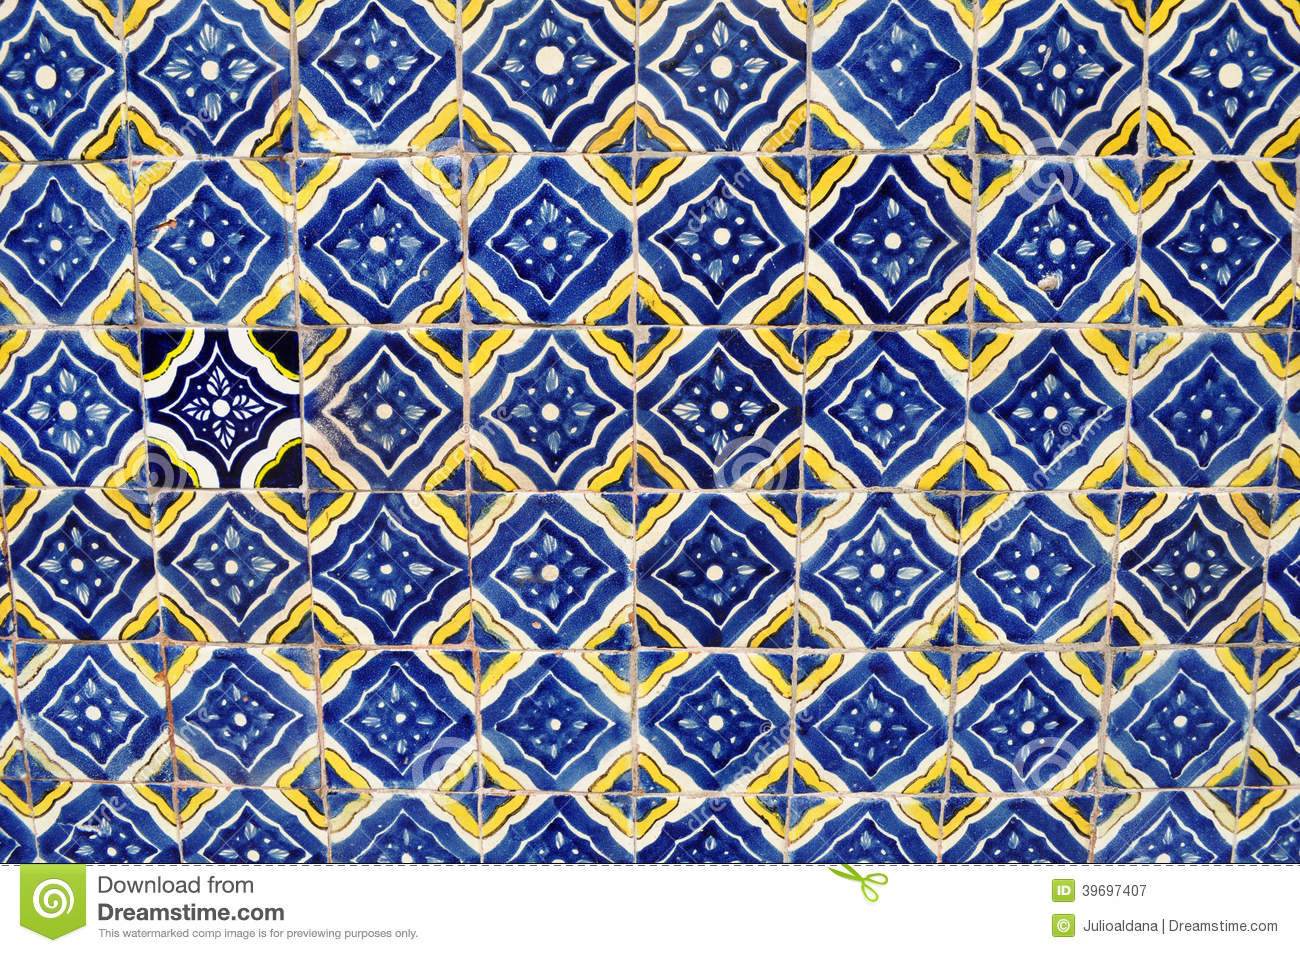 mexican ceramic mosaic wall - tile background stock image - image of